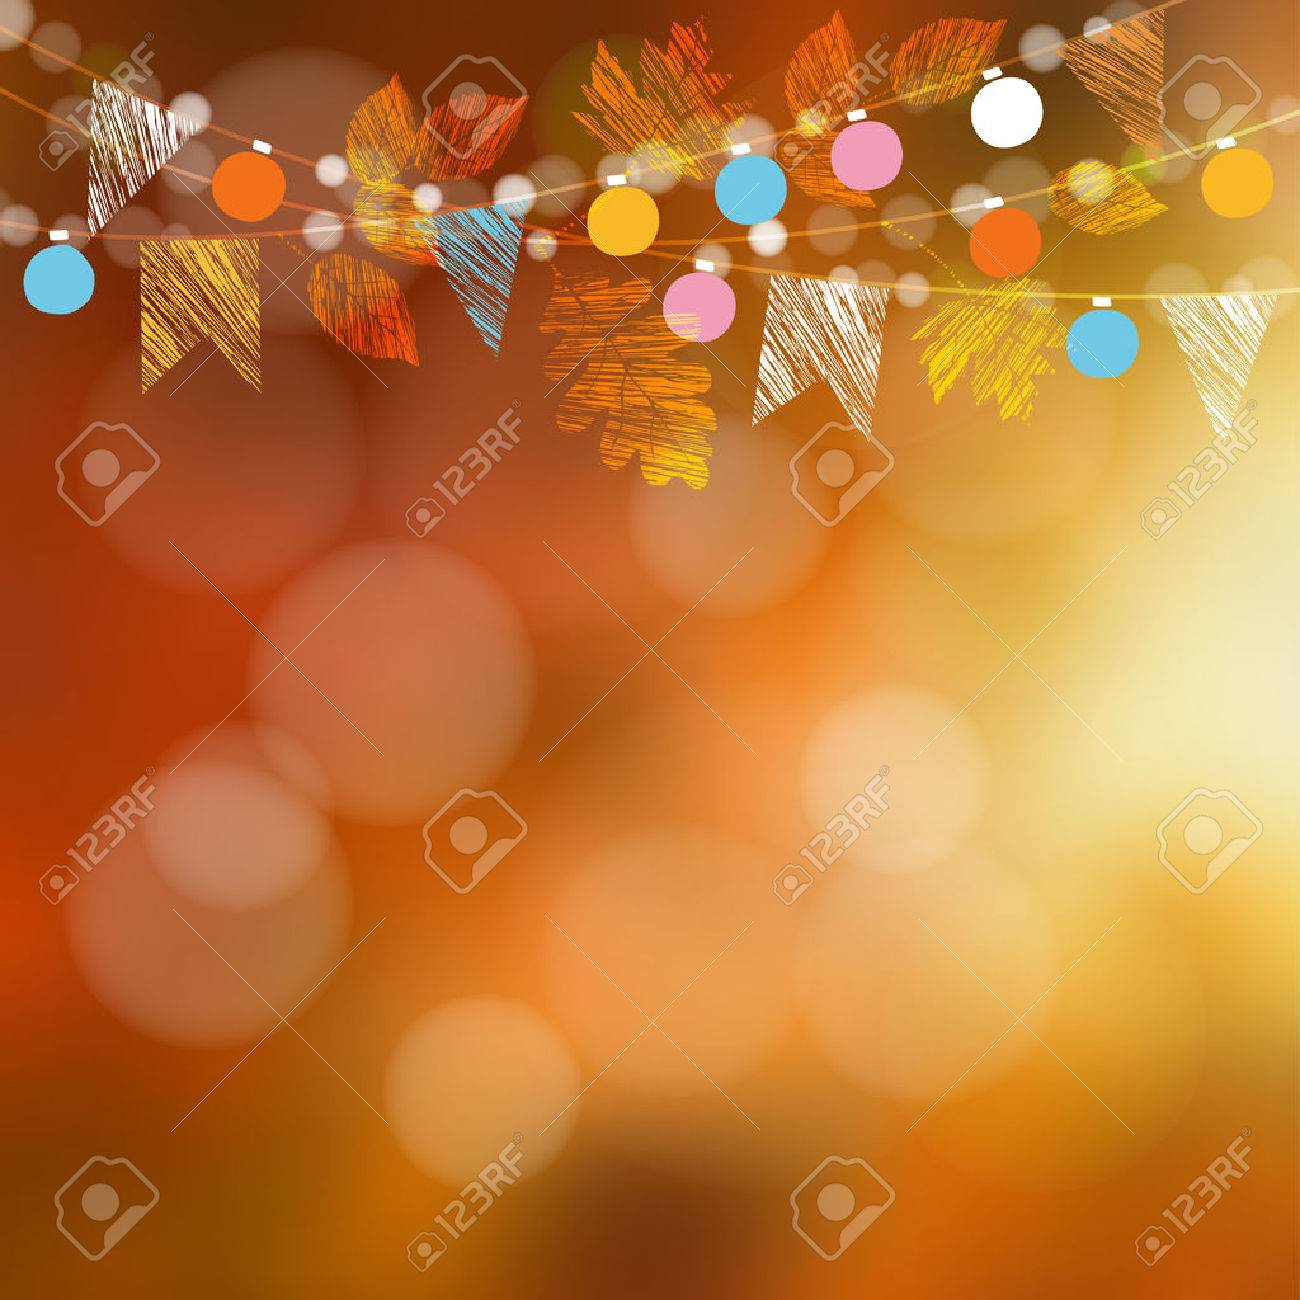 Autumn fall card, banner. Garden party decoration. Garland of oak, maple leaves, lights, party flags.Vector blurred illustration background. - 63000403